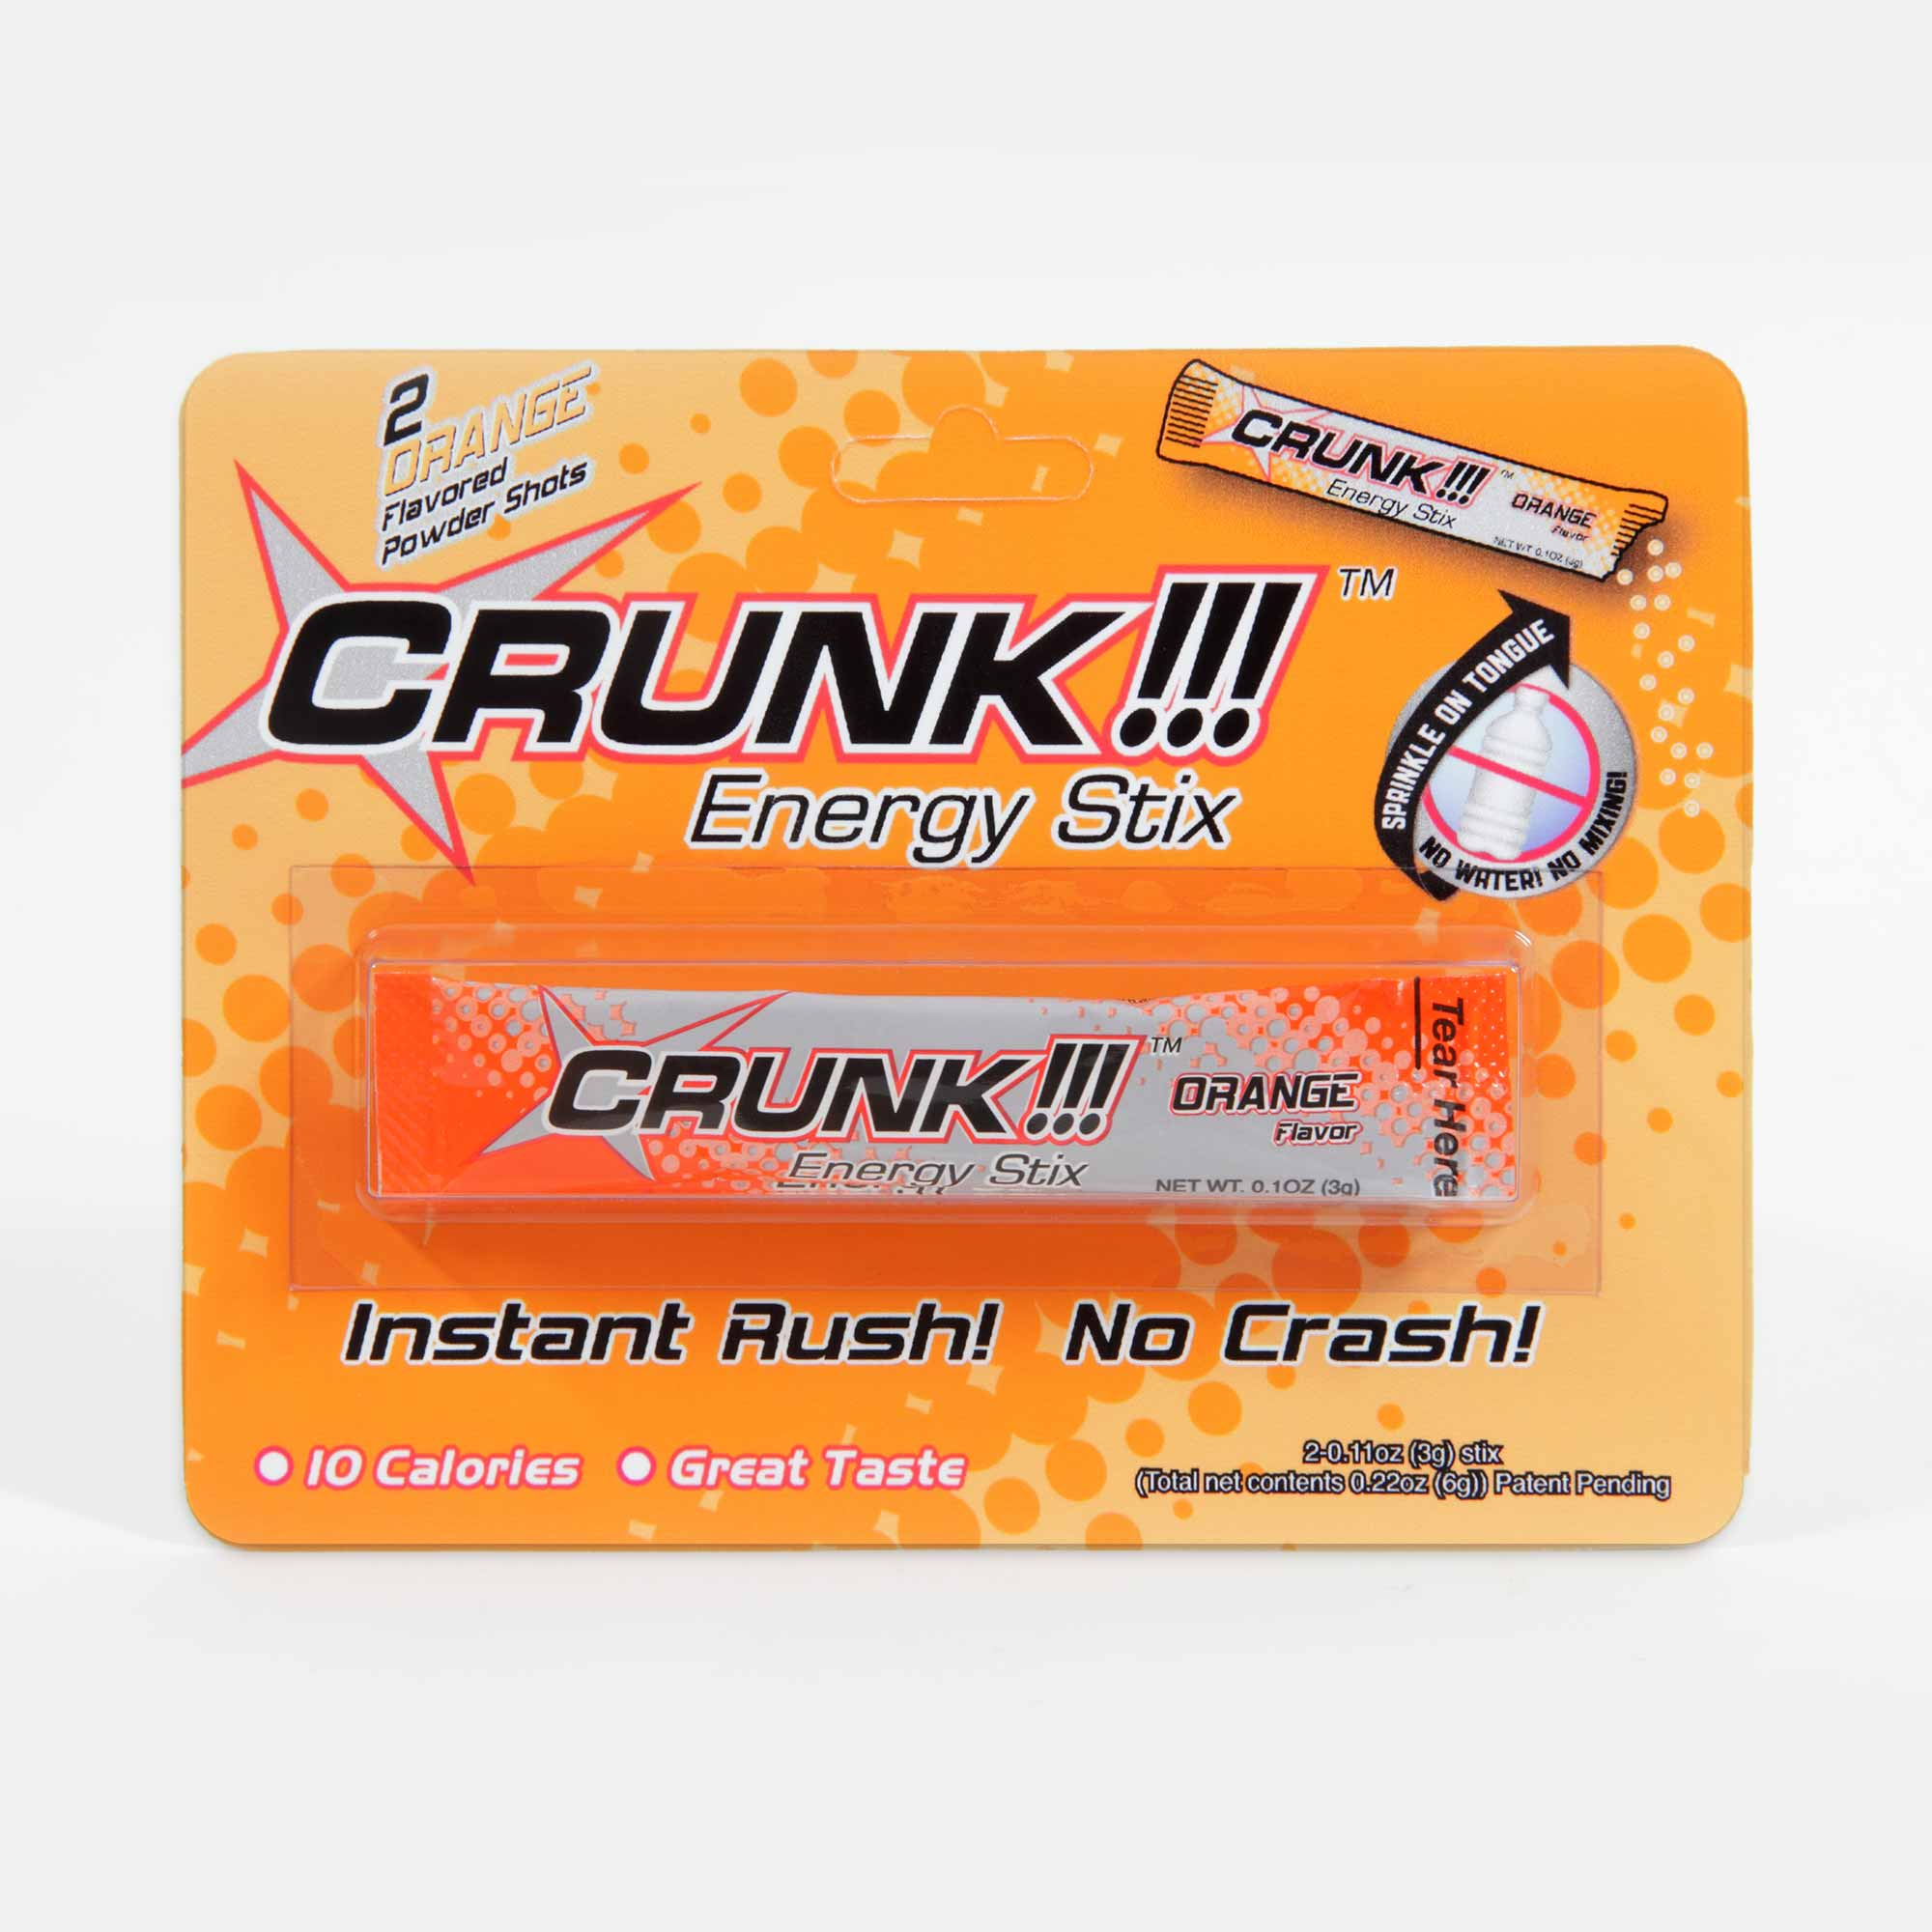 Crunk product photography